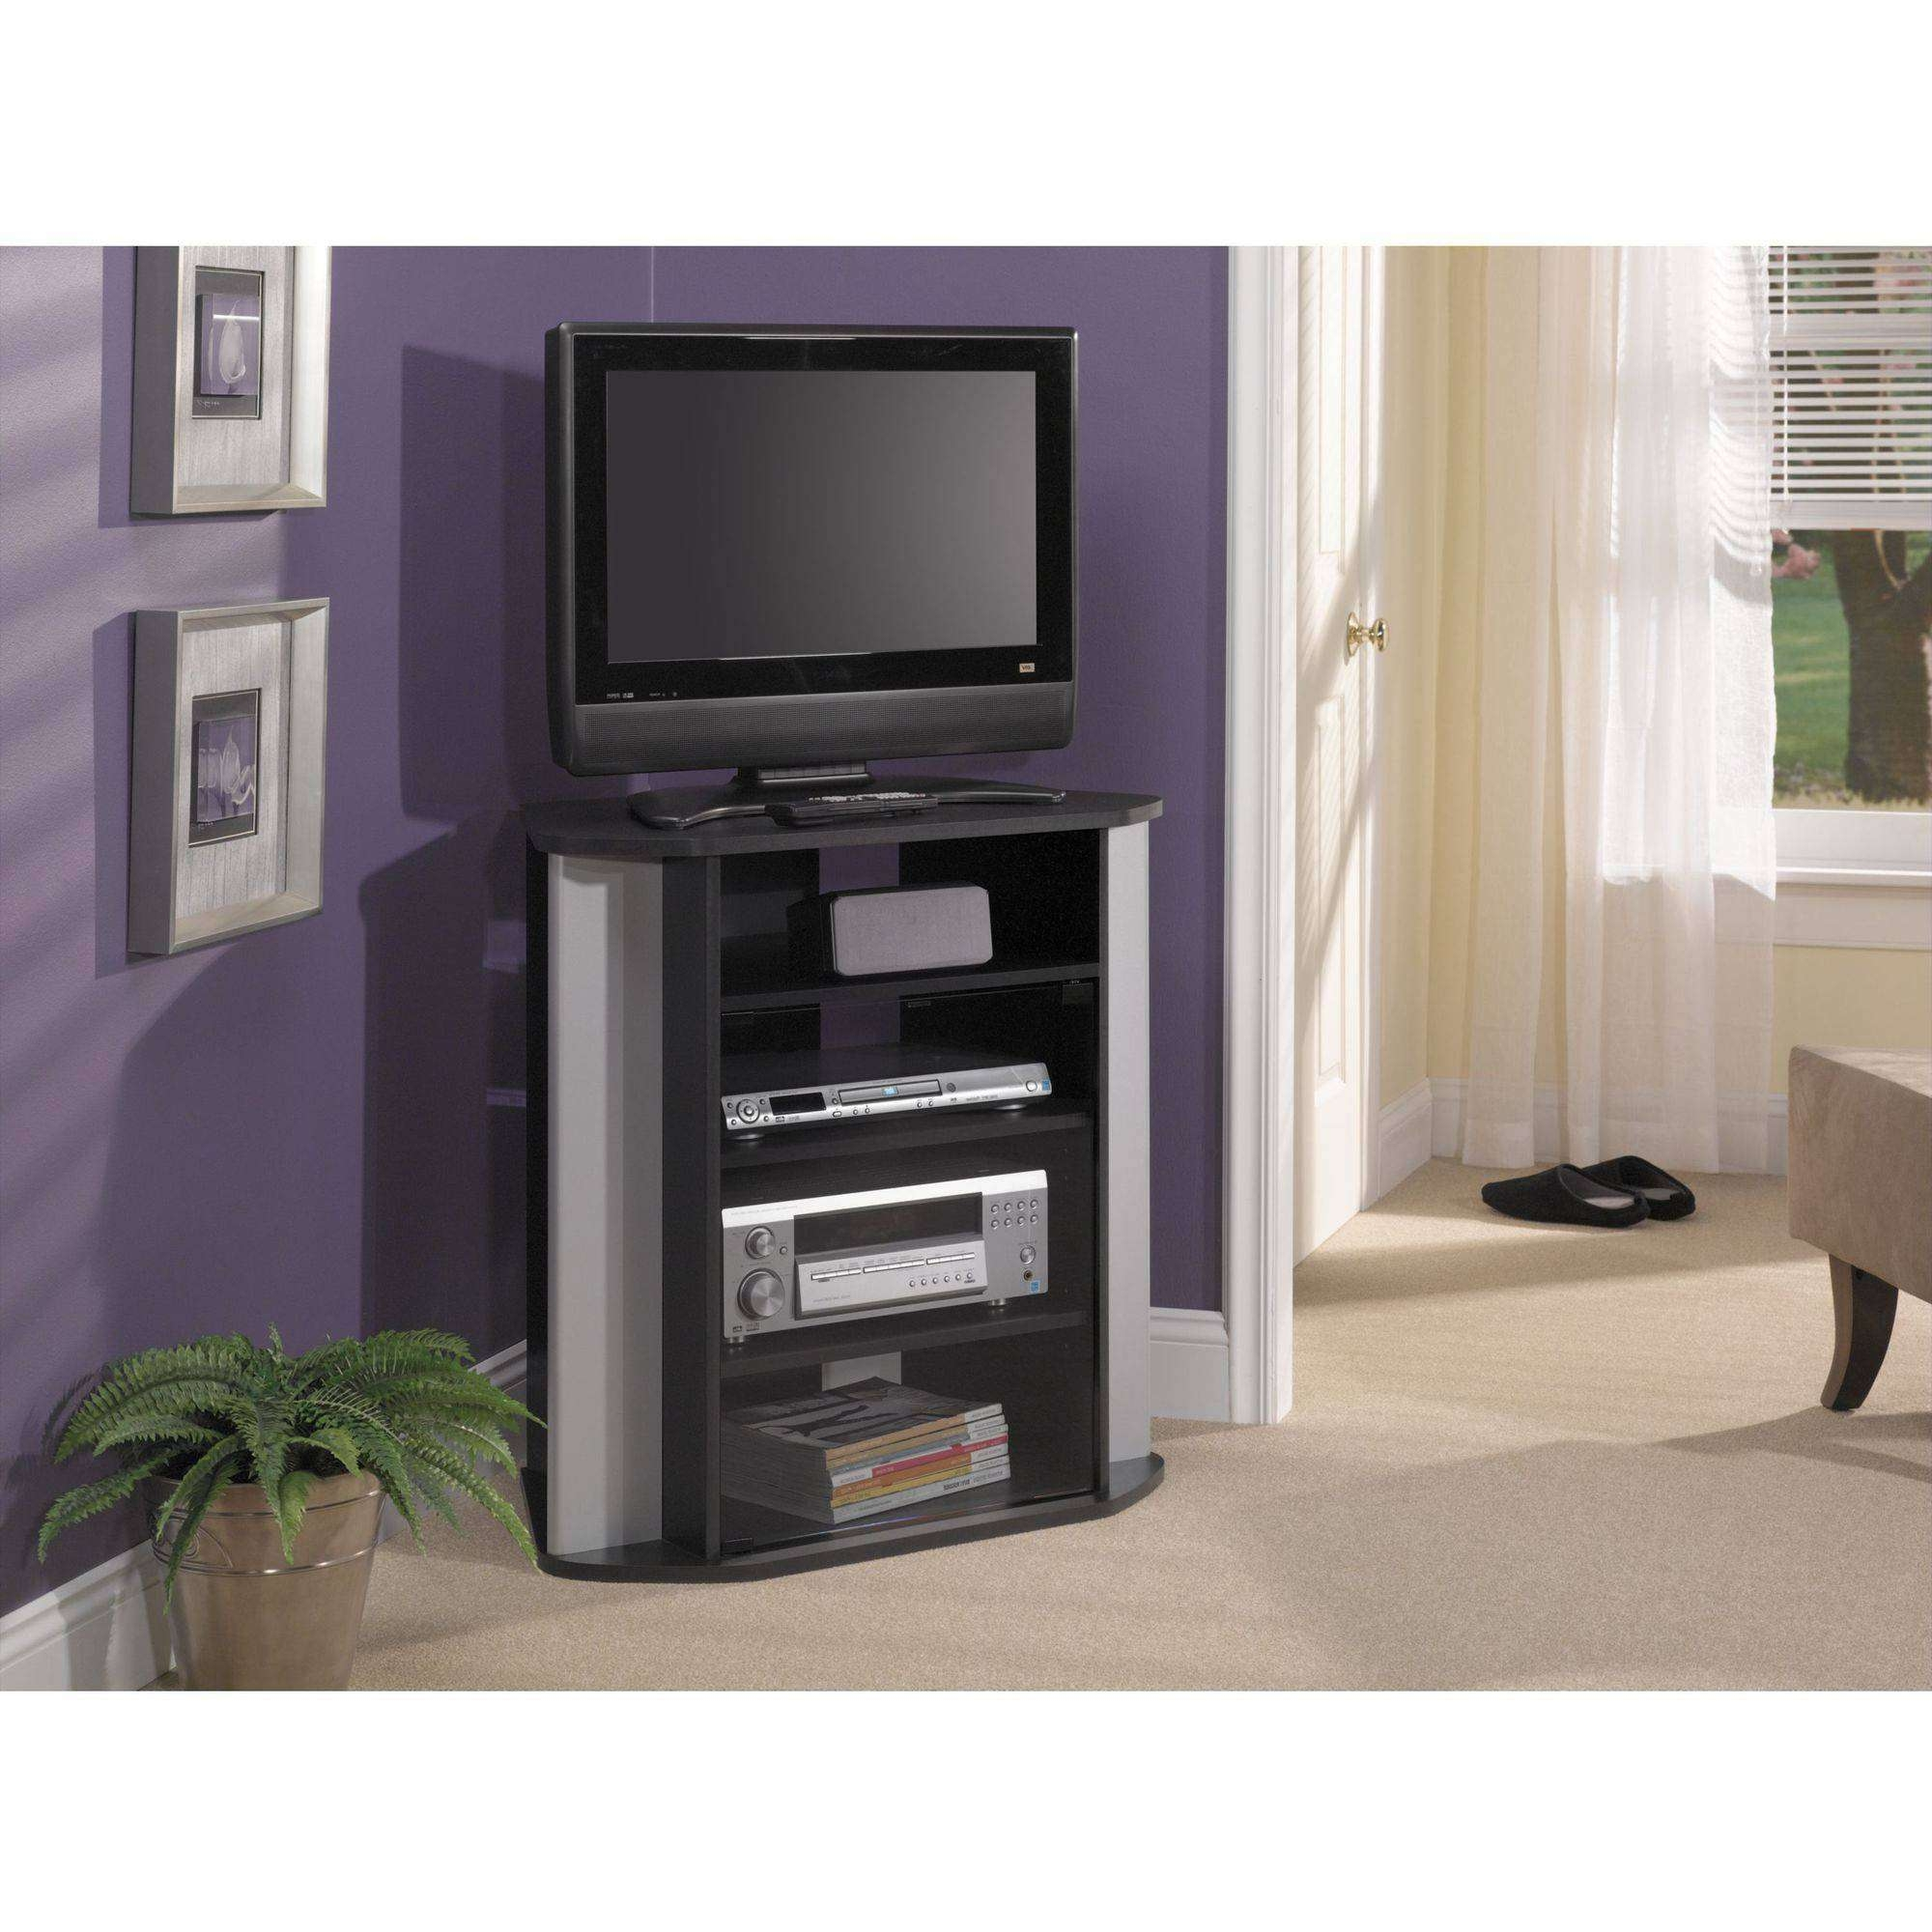 Best Corner Tv Stands For 50 Inch Tv 57 On Home Improvement Ideas With Corner Tv Stands For 50 Inch Tv (View 19 of 20)